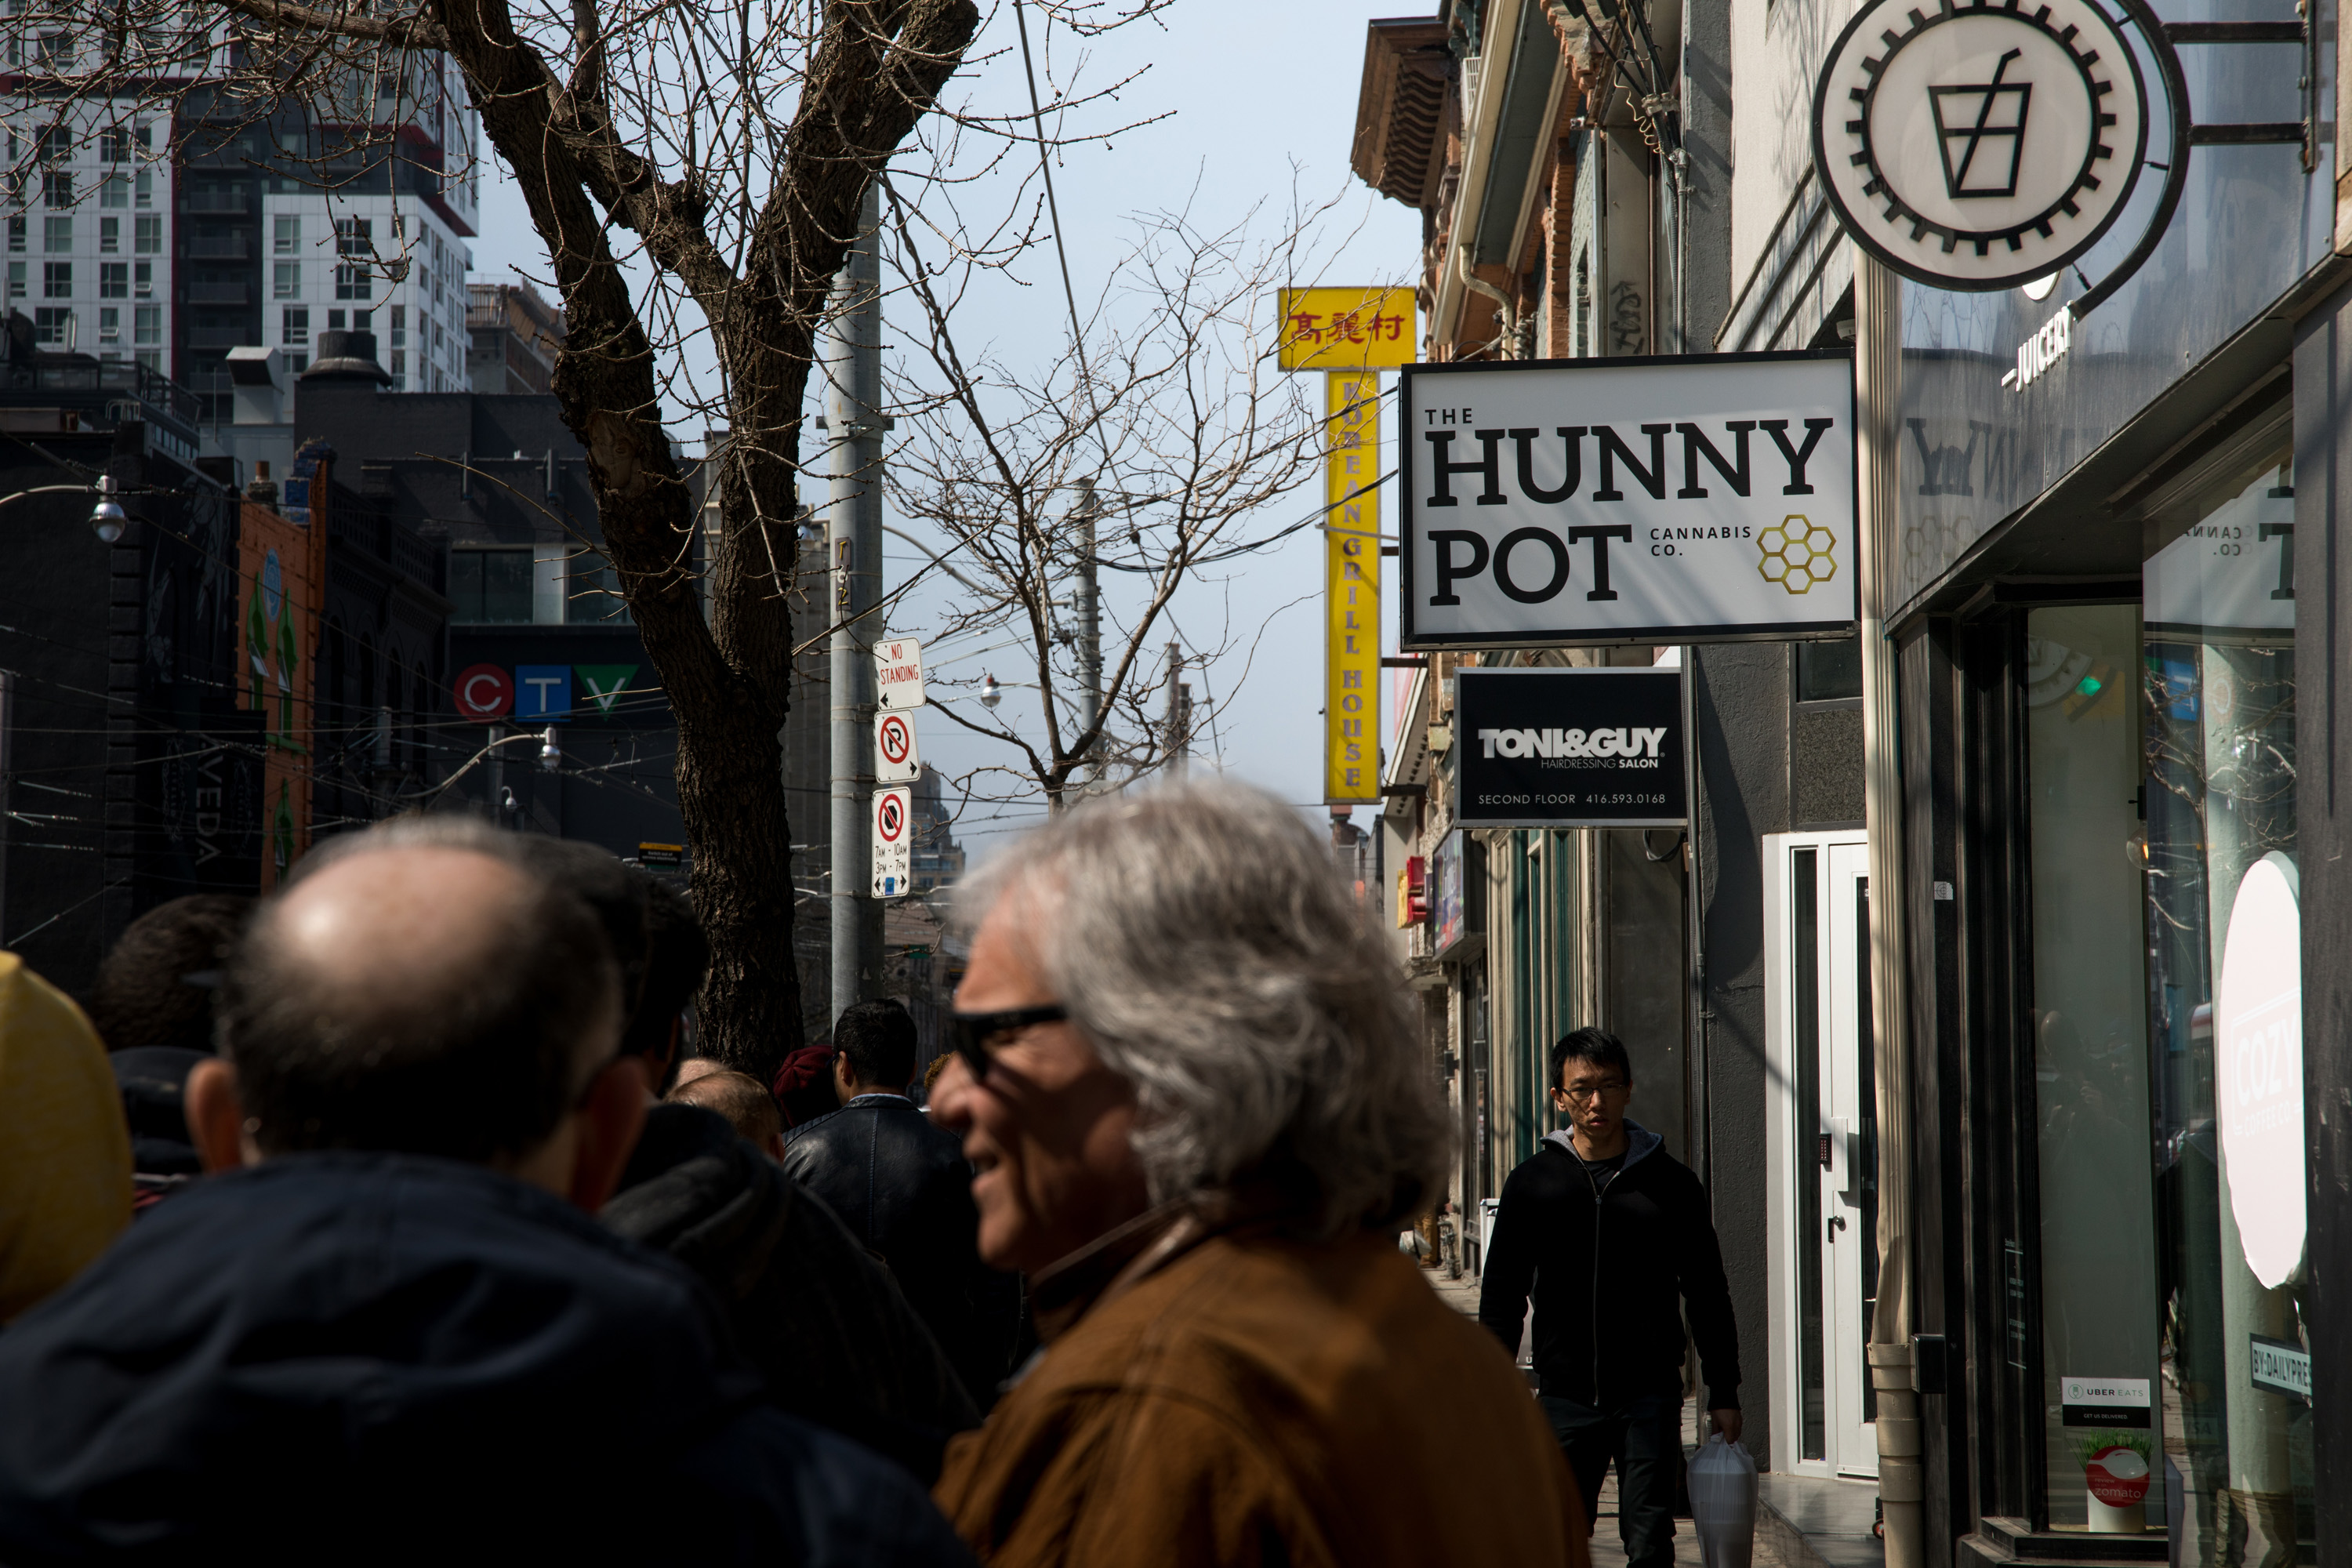 The Hunny Pot is in the center of Toronto. People from all over the city were in line to go to the store.